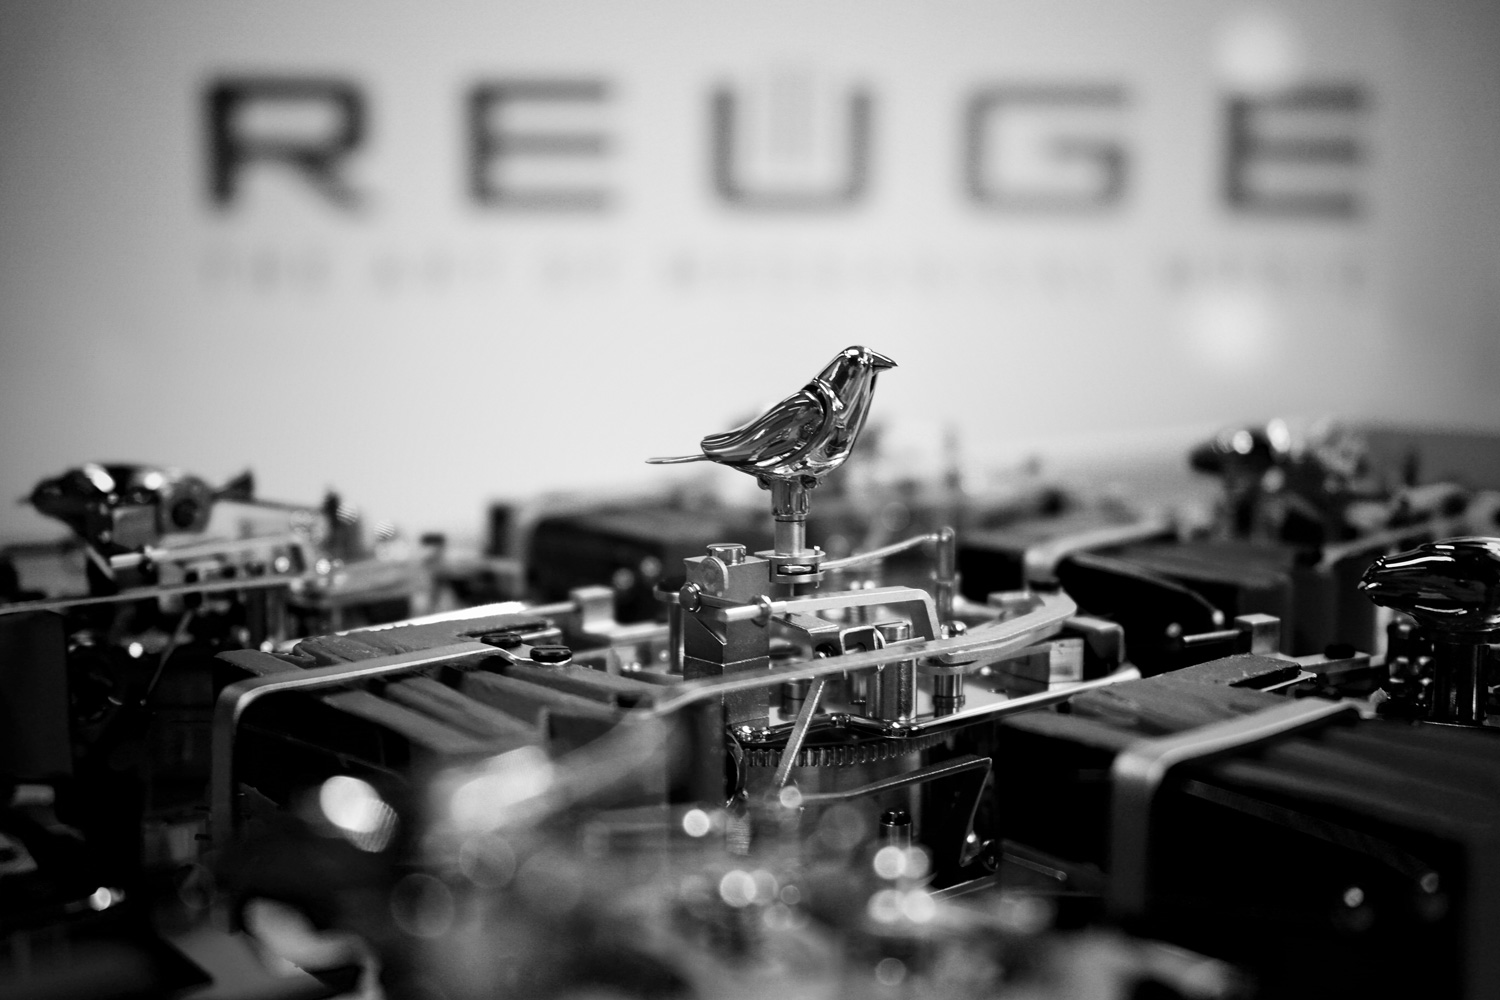 The making of the movement for the singing bird atop the Kelys  & Chirp automaton.